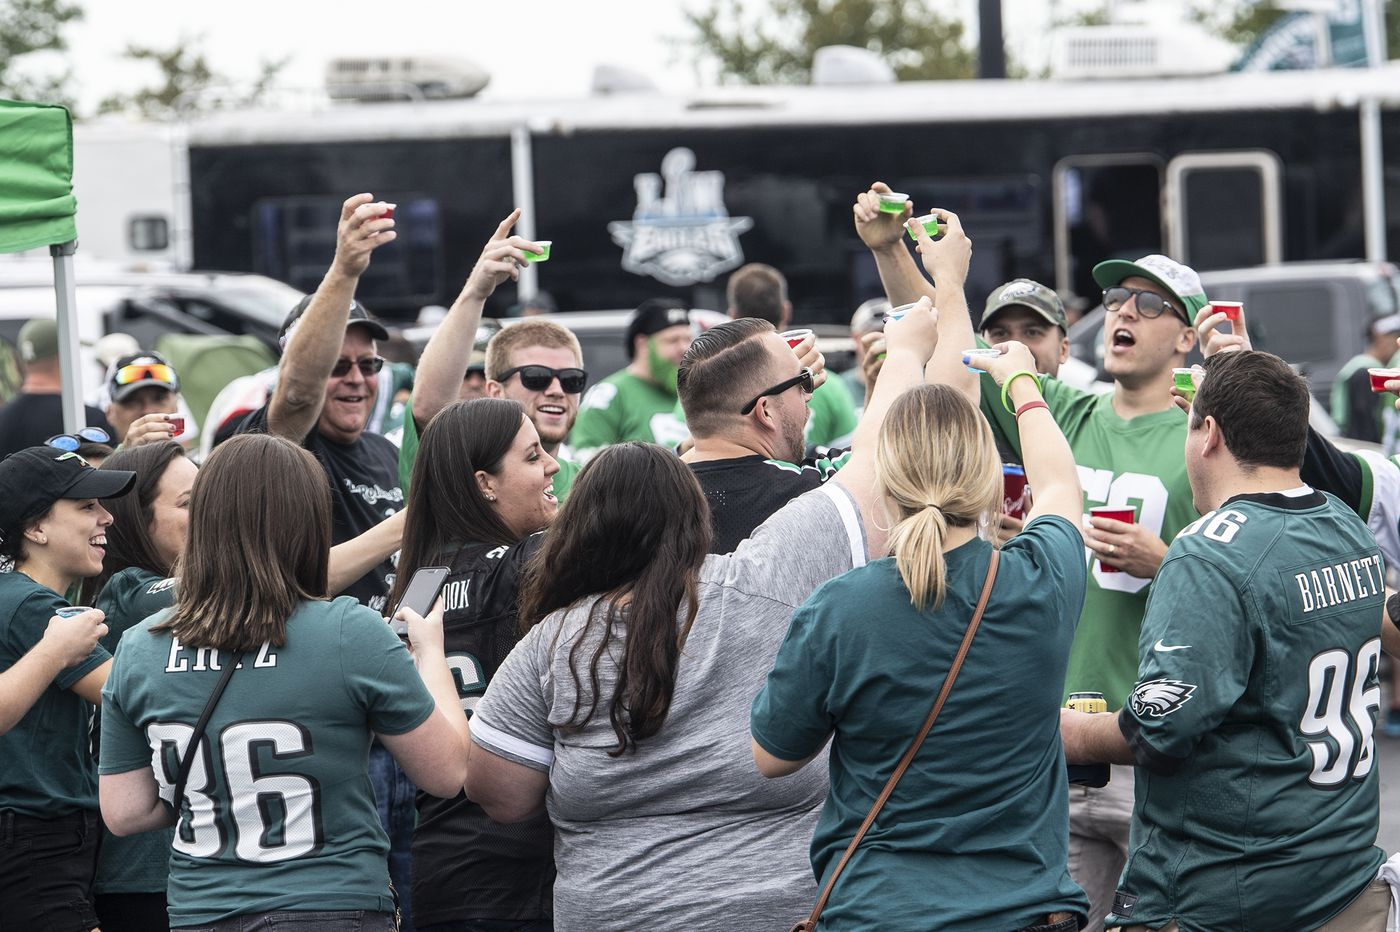 For thousands of Eagles fans, another tailgating season kicks off